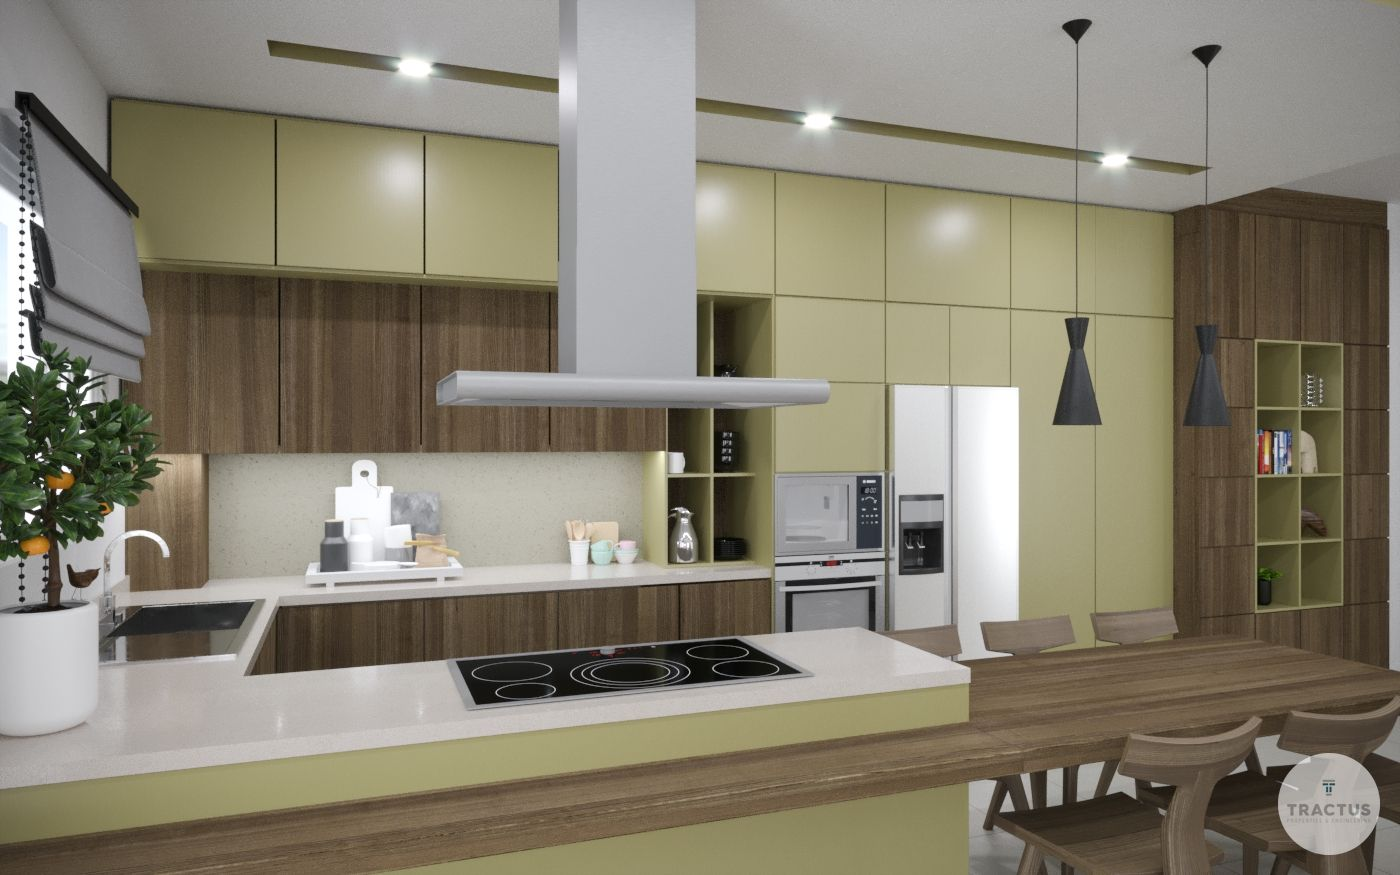 Total transformation - renovation of a shop into a modern family apartment.